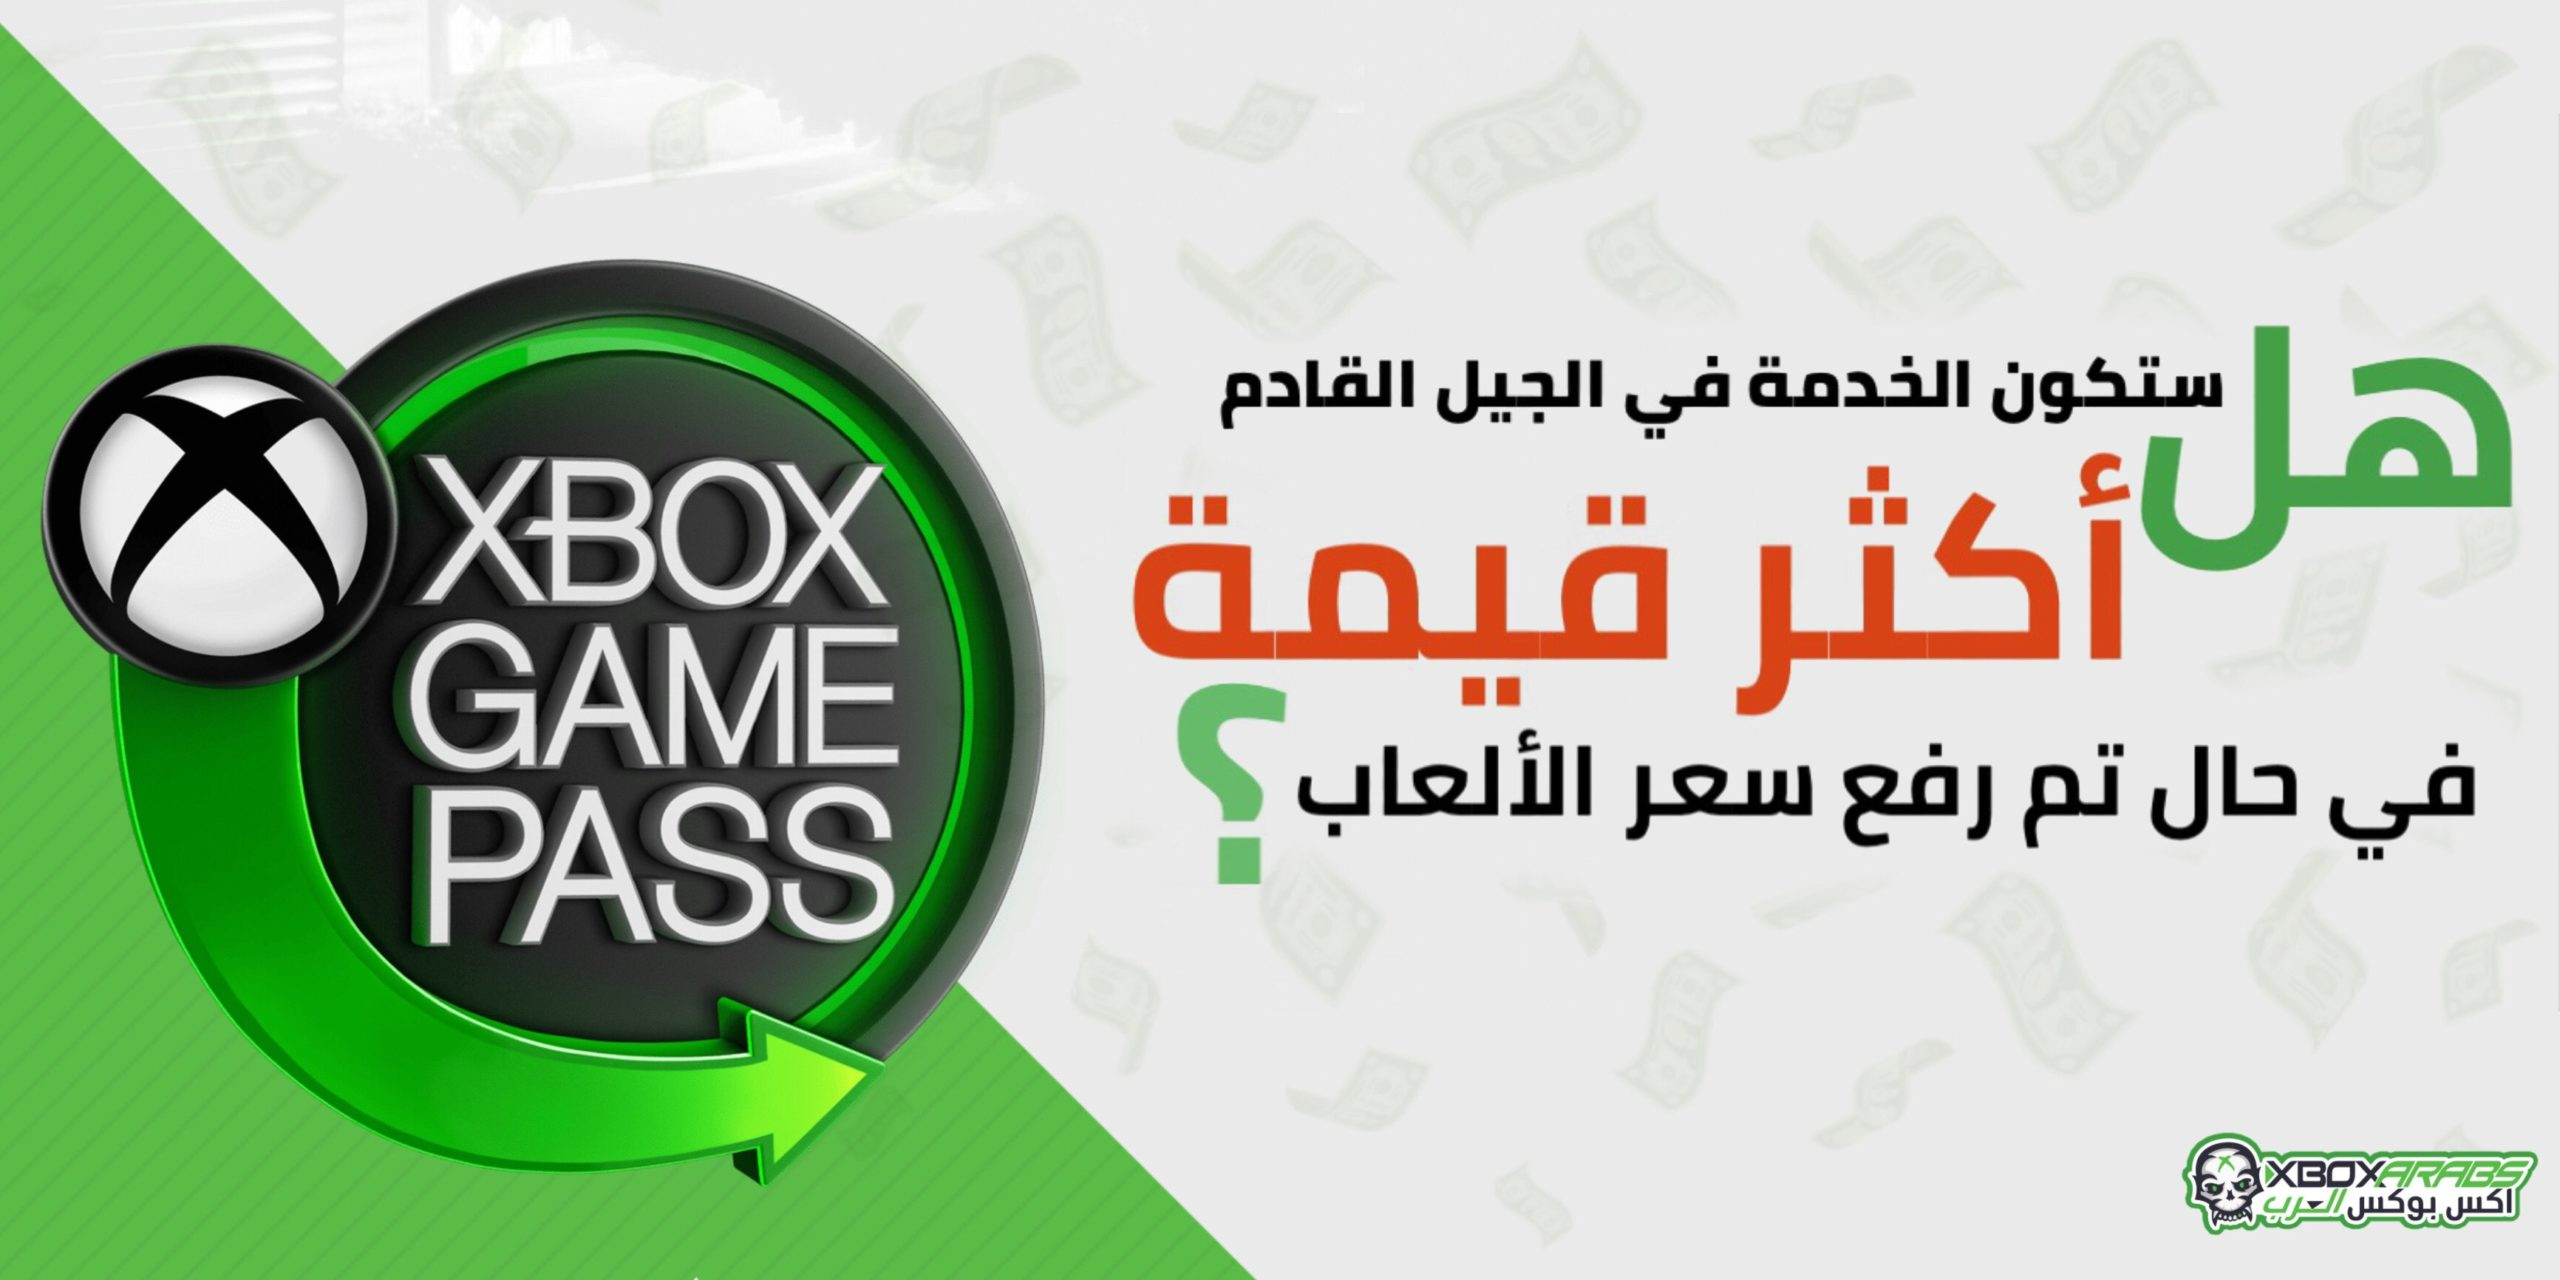 XBOX Game Pass more value 1 2